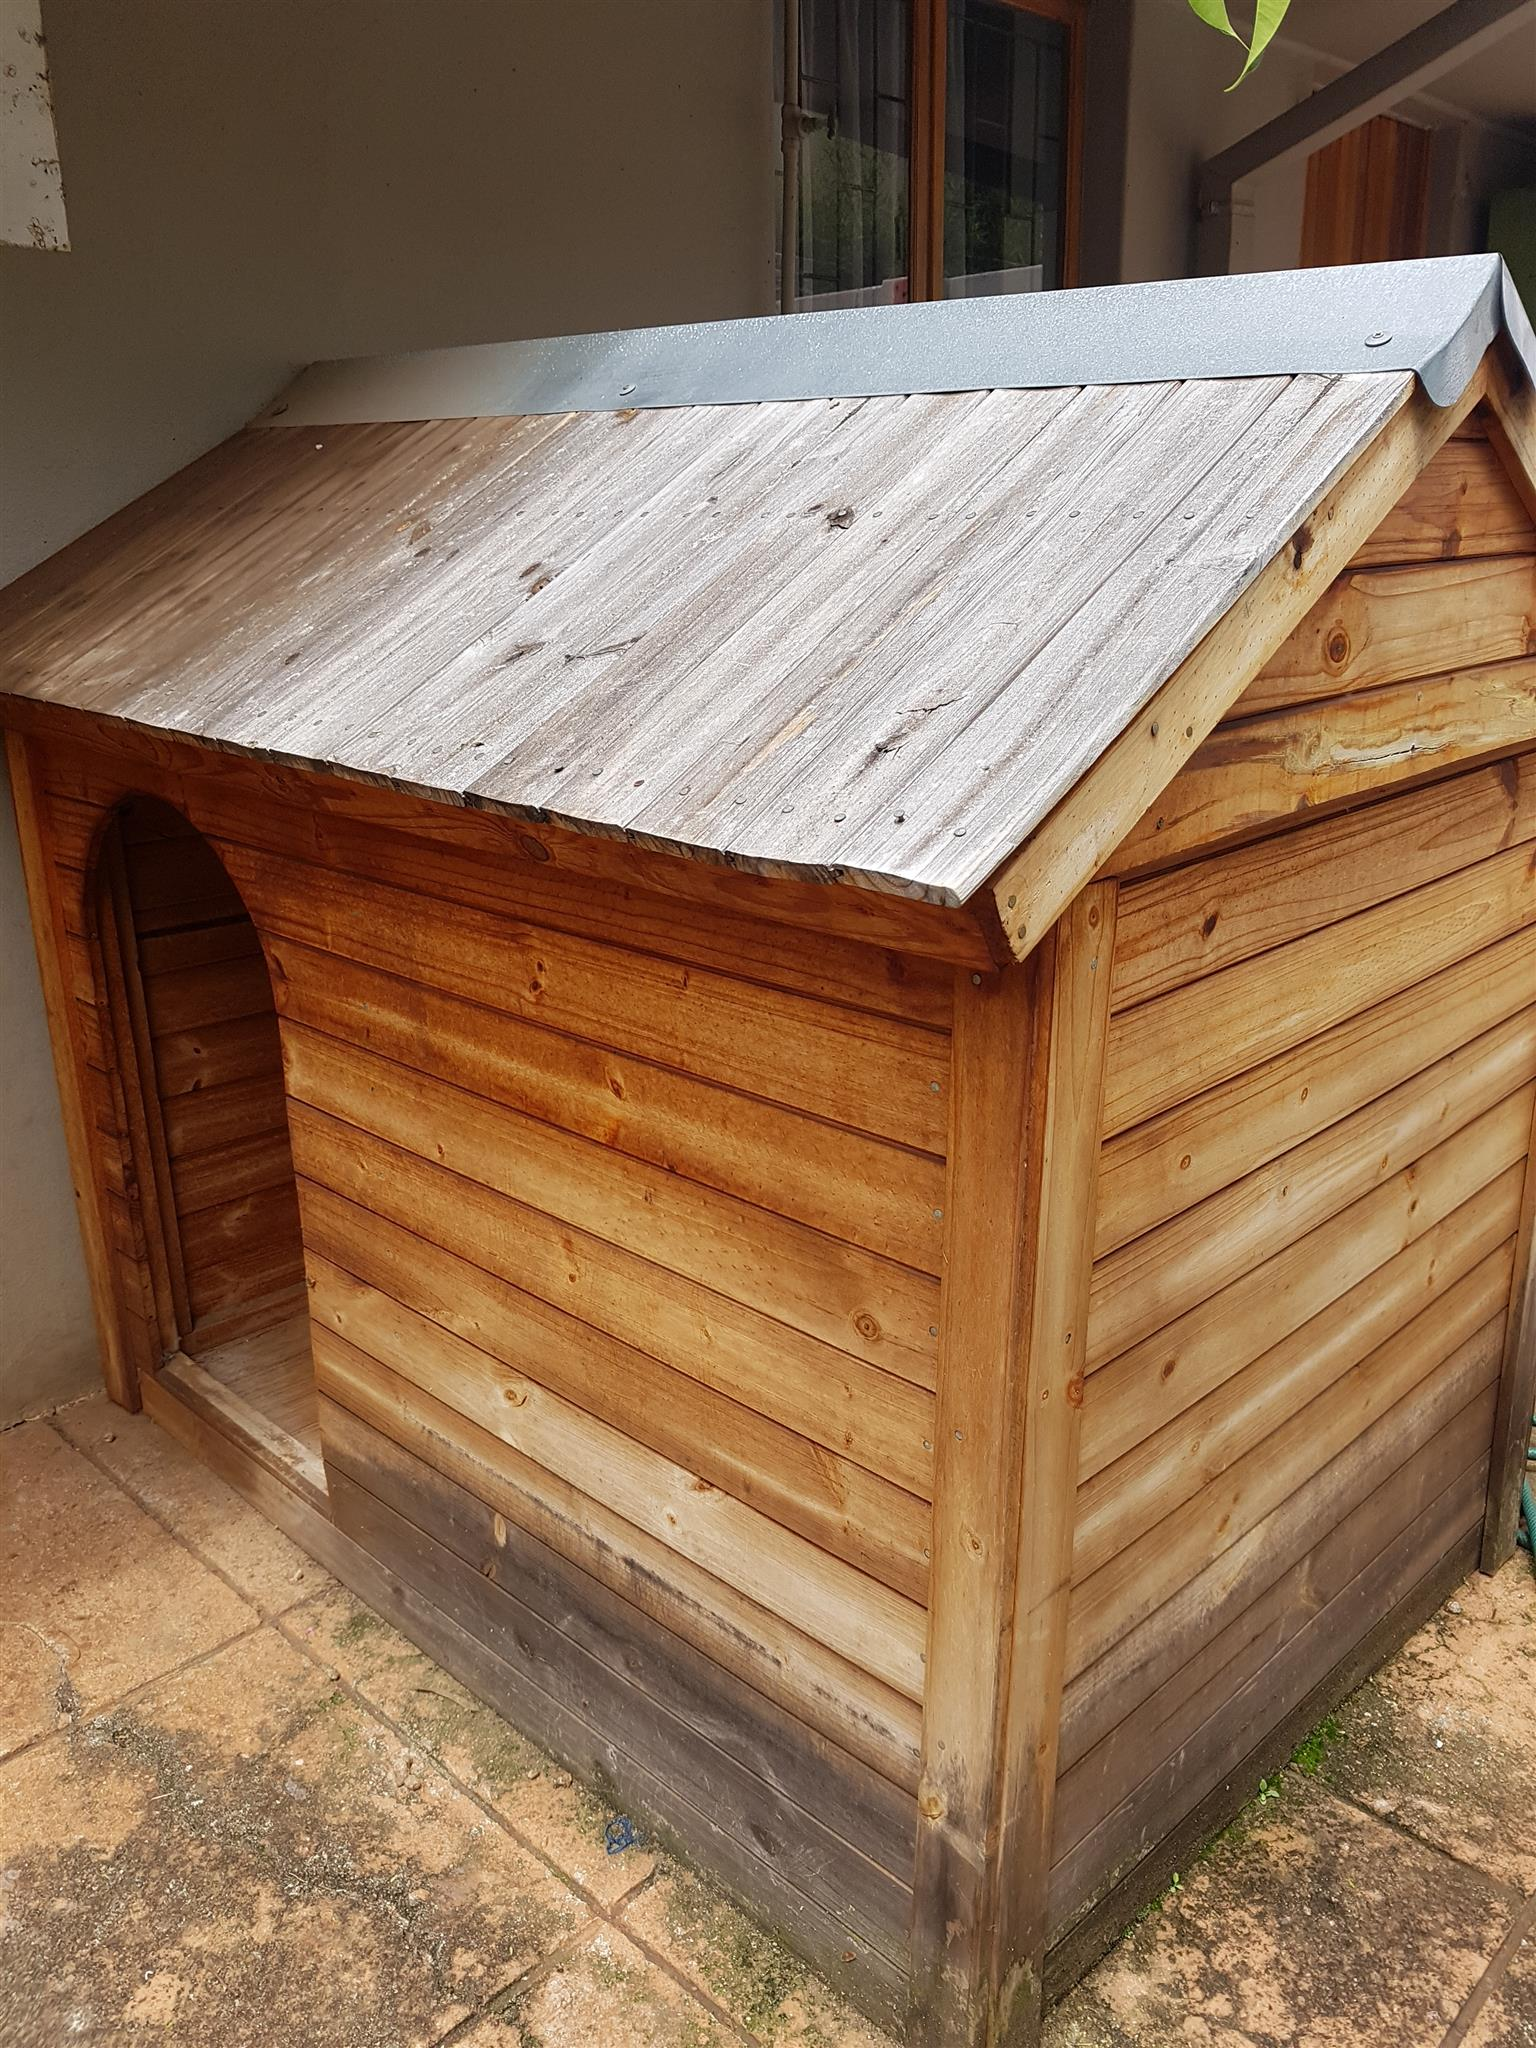 Very large doghouse for Great Dane or same size dogs